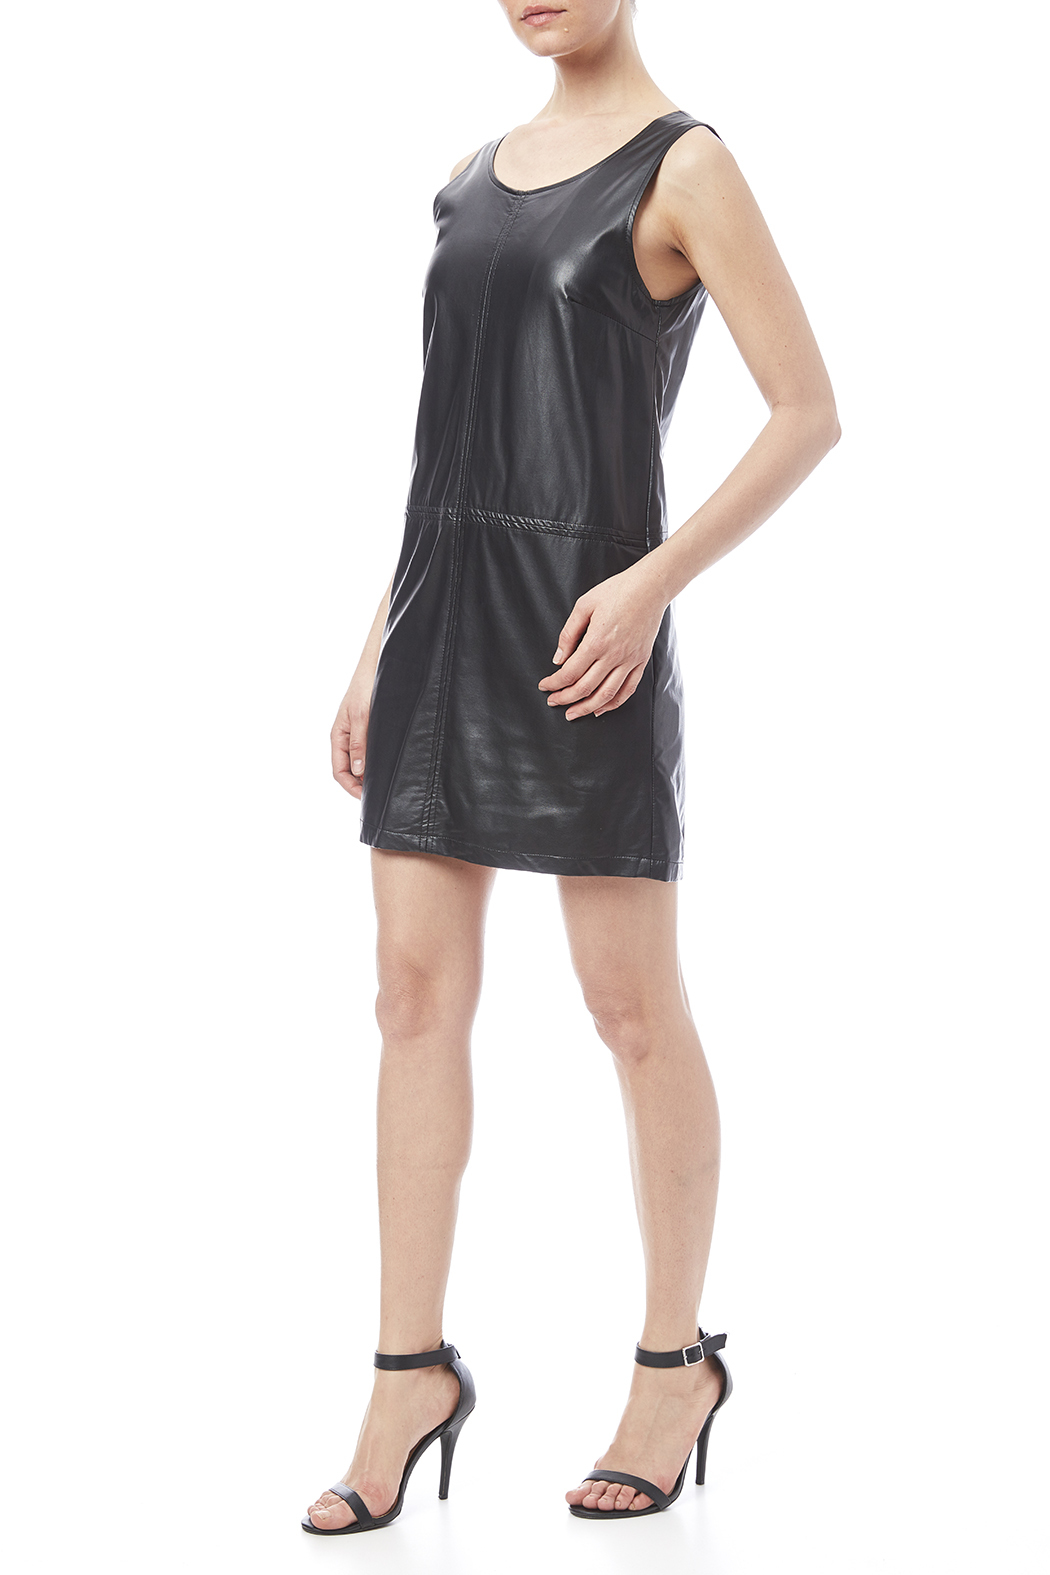 LoveRiche Black Faux Leather Dress - Front Full Image